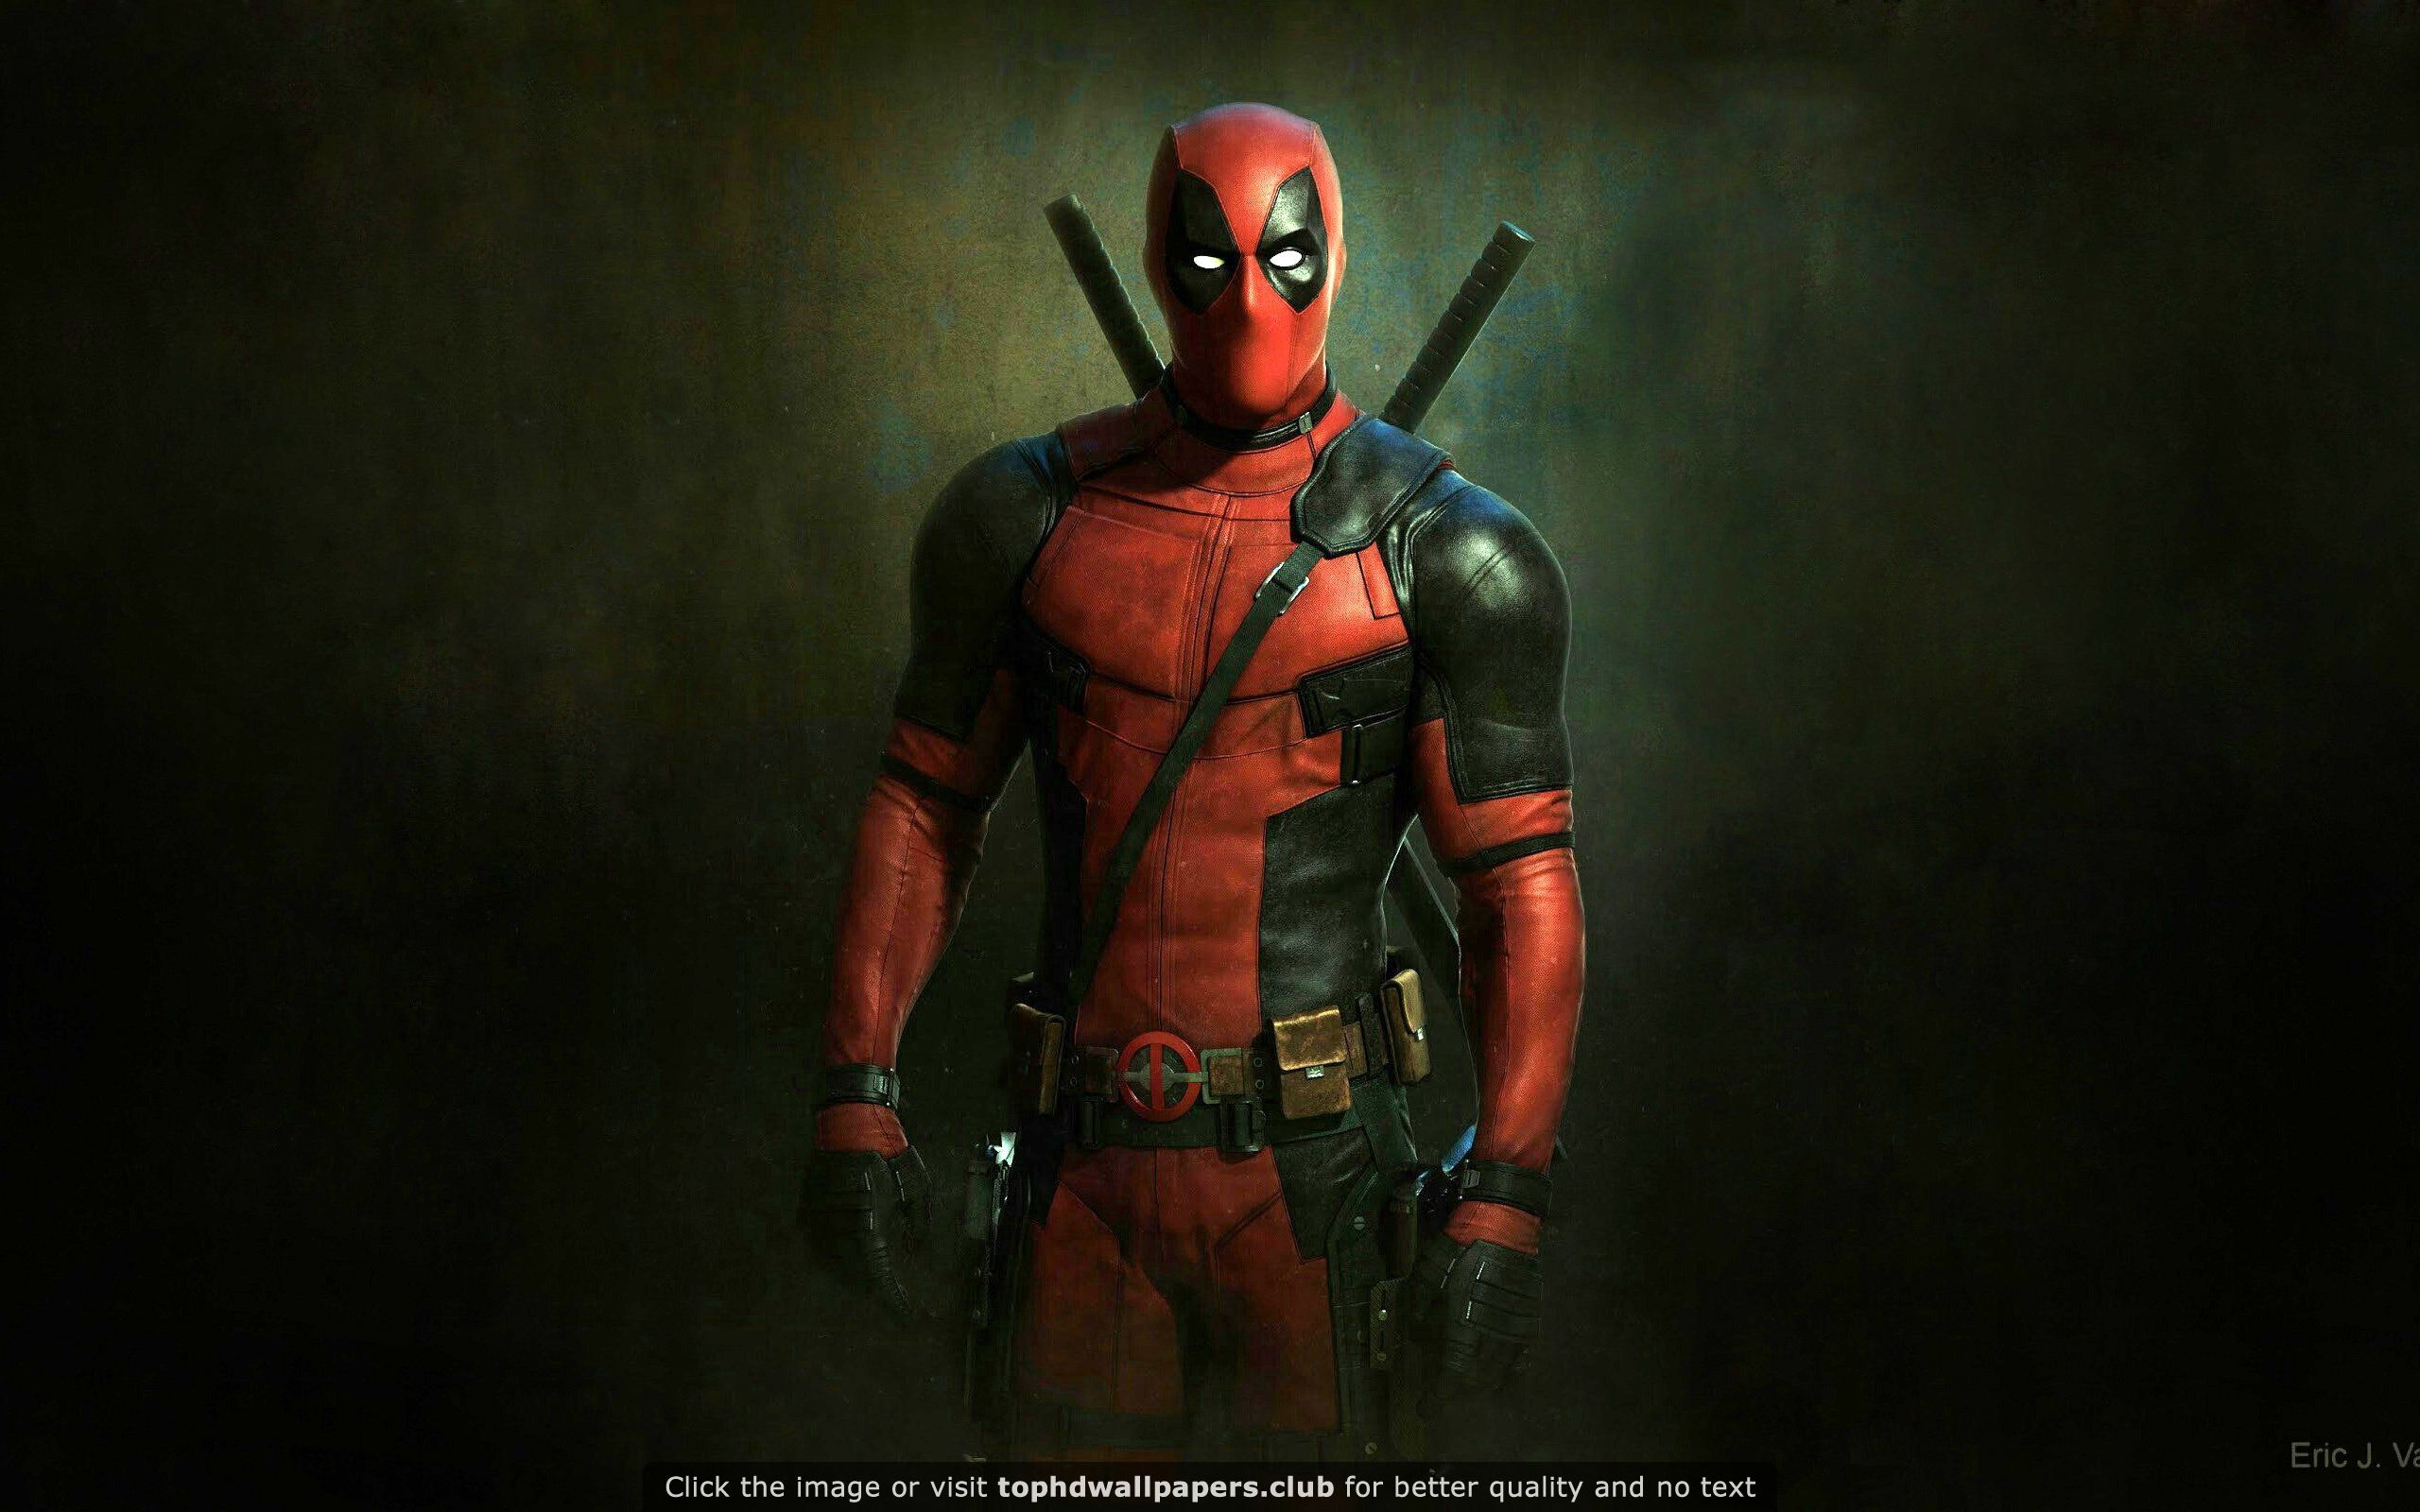 Deadpool On A Dark Background Hd Wallpaper Deadpool Movie Deadpool Art Deadpool Wallpaper